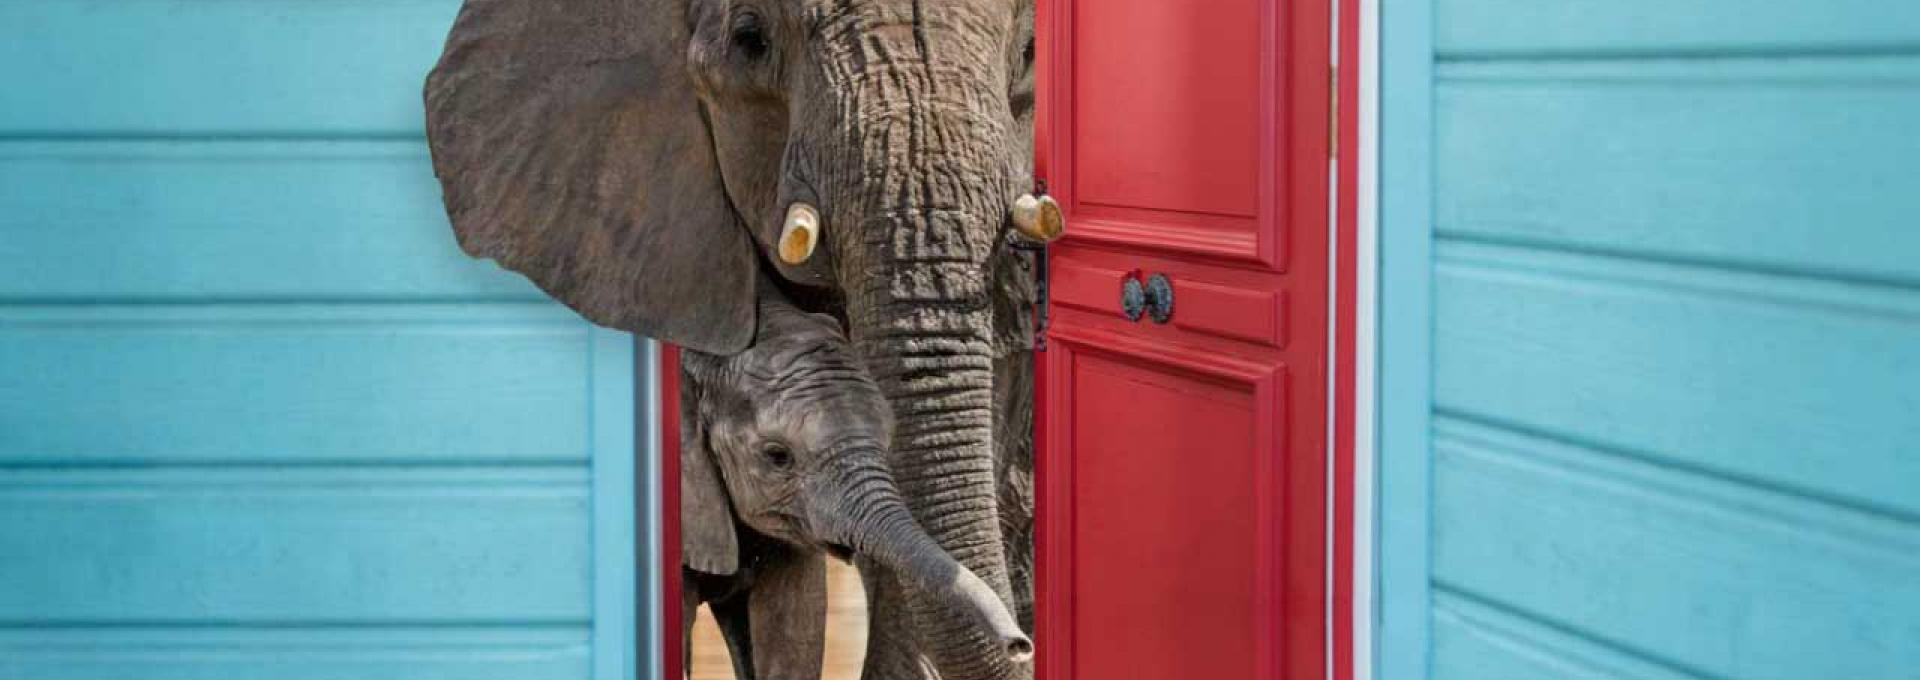 Two elephants are peeking out of the front door of their home.